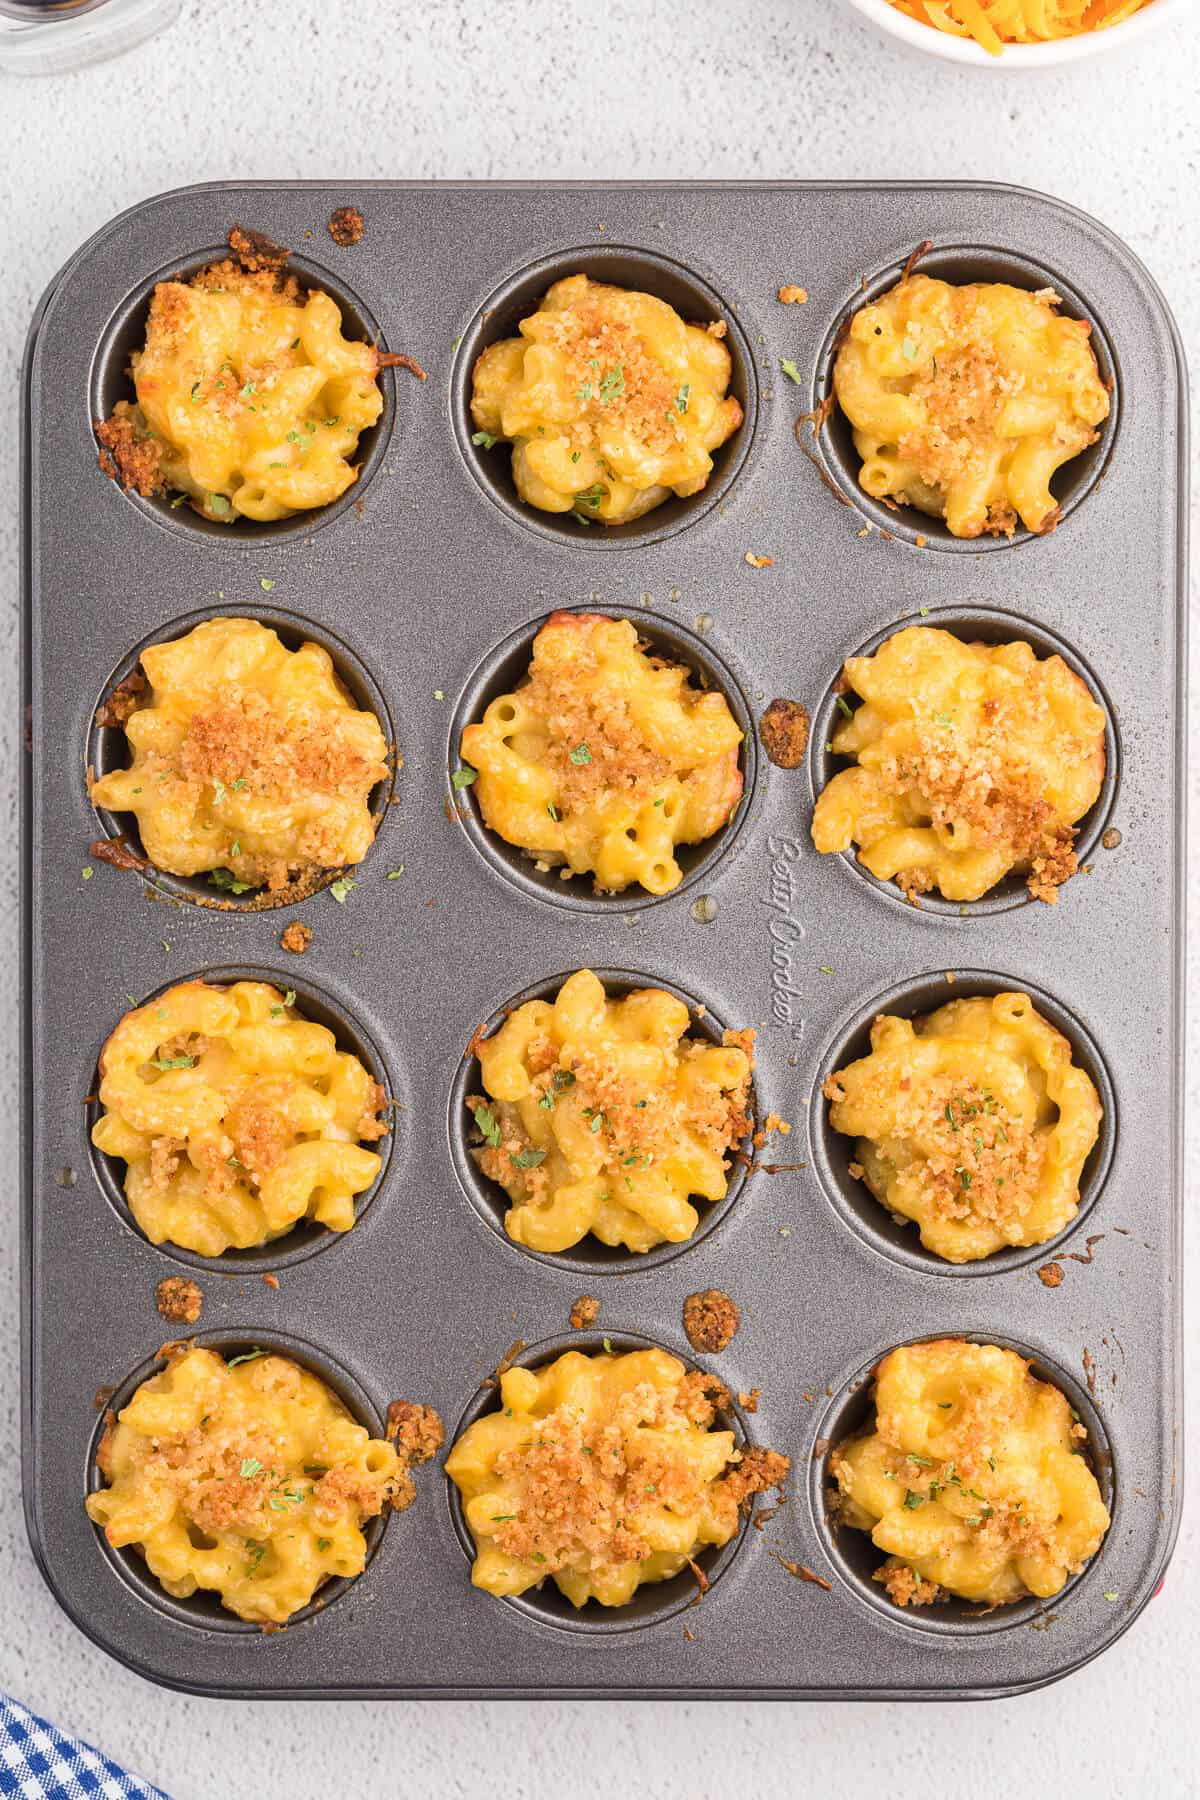 Mac and Cheese Cups - Comfort food in a cup! The perfect cozy, cheesy side dish, but handheld for appetizers and tailgating.